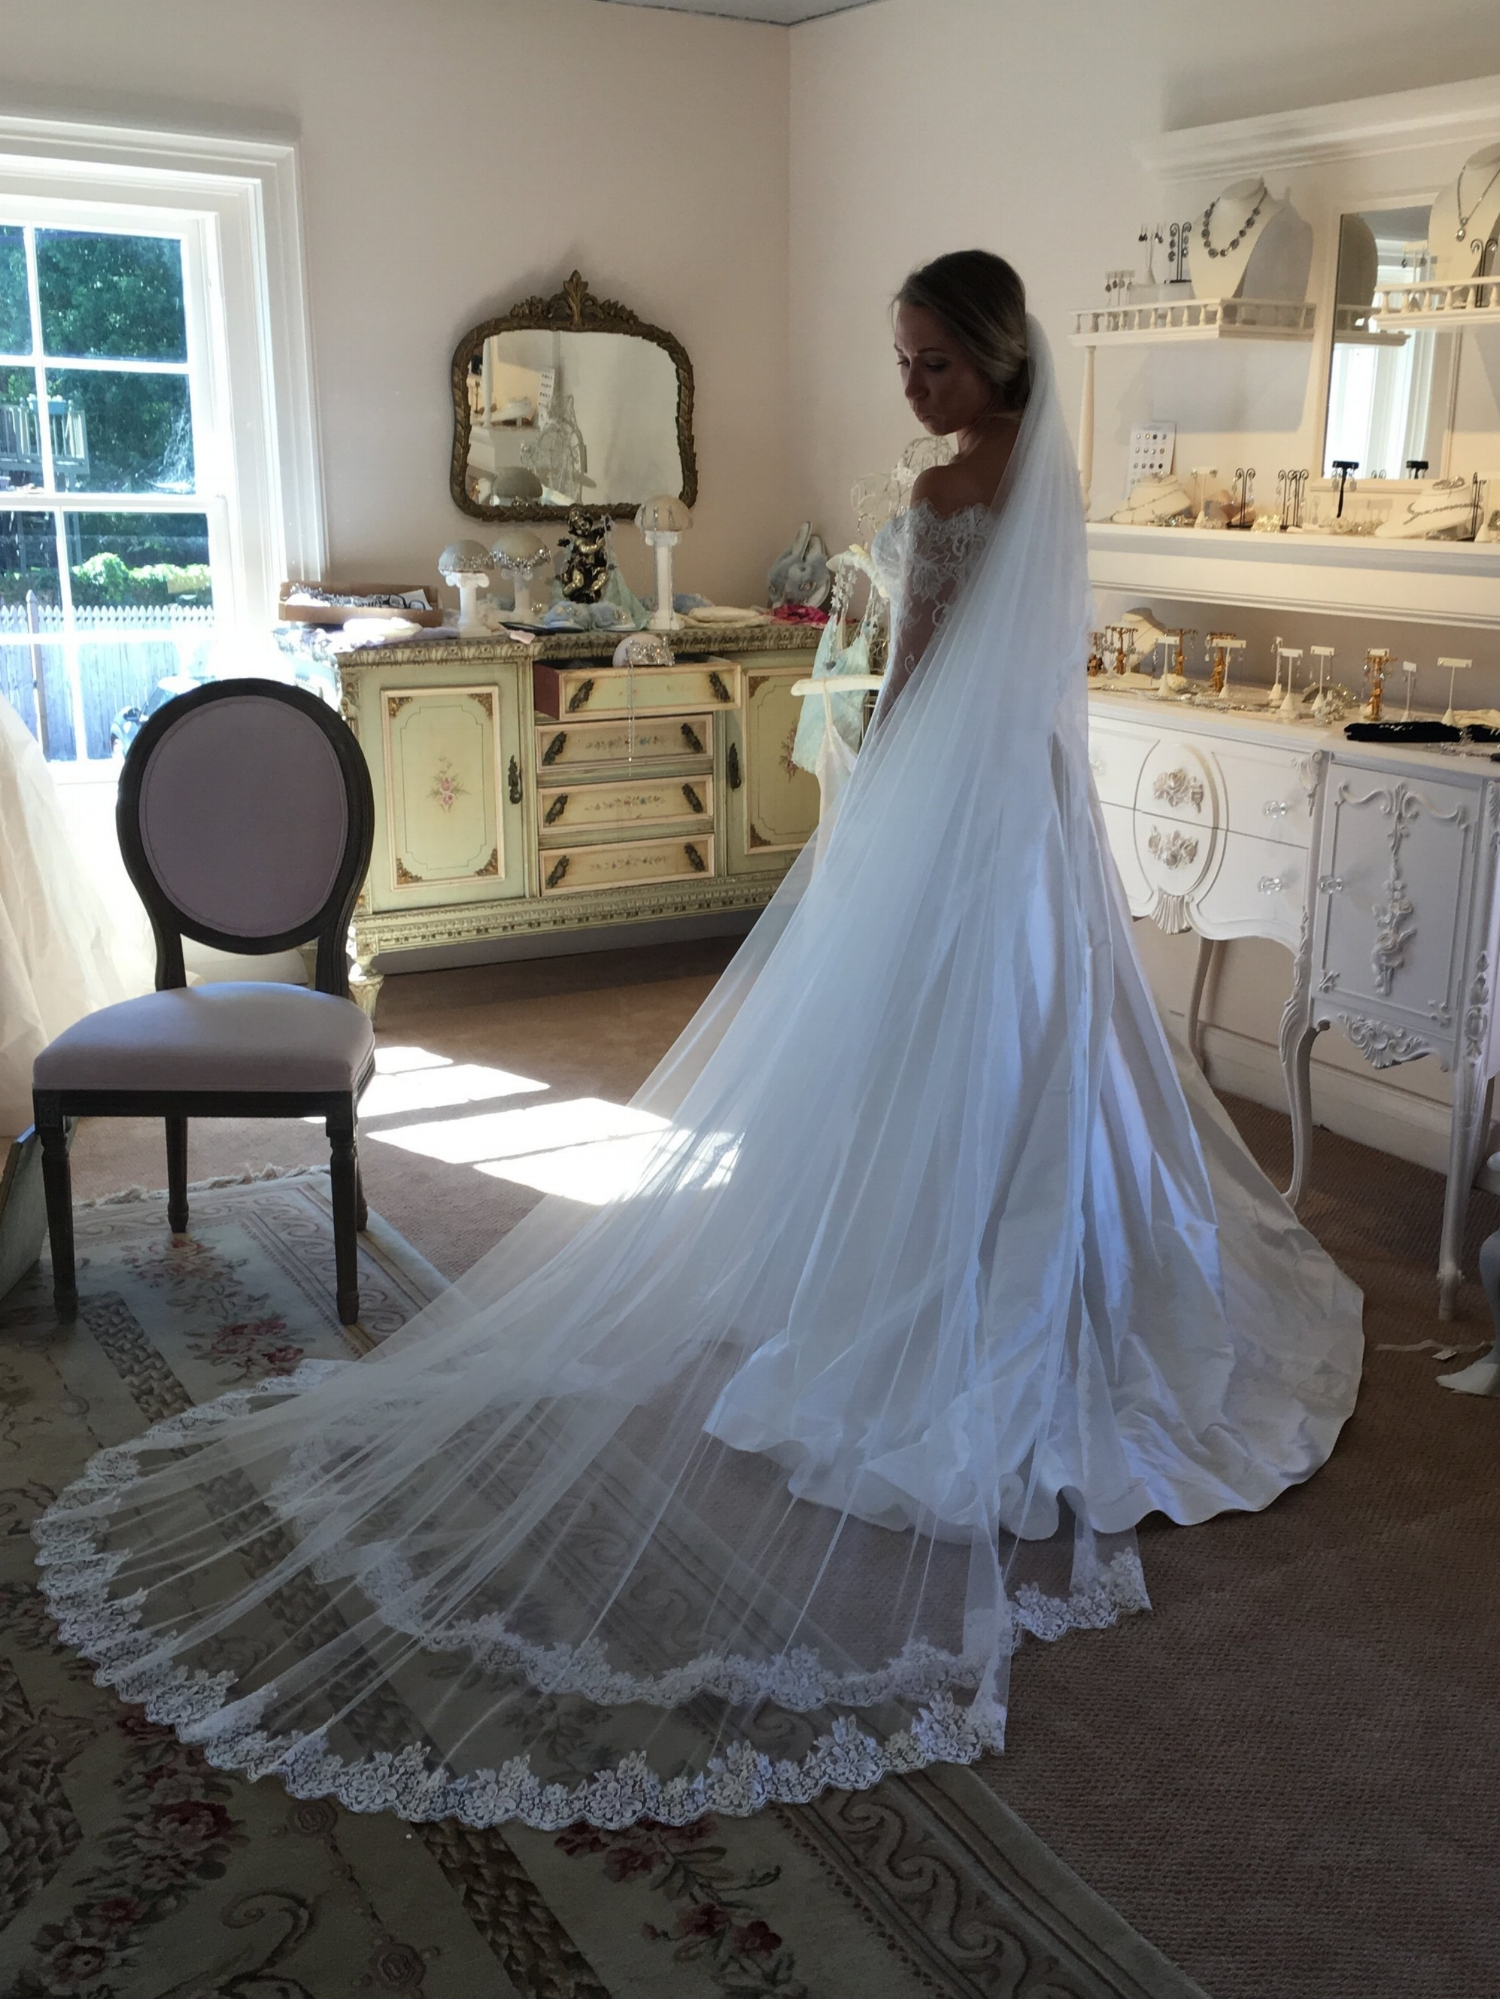 Brielle fell in love with the idea of a two-tier cathedral length veil. This veil was my first draft. We brought it to  Something Bleu Bridal  to try on when she picked up her wedding gown in Saratoga Springs, NY. While this is by no means a professional photo, it is one of our favorites taken in their brand new accessory salon.